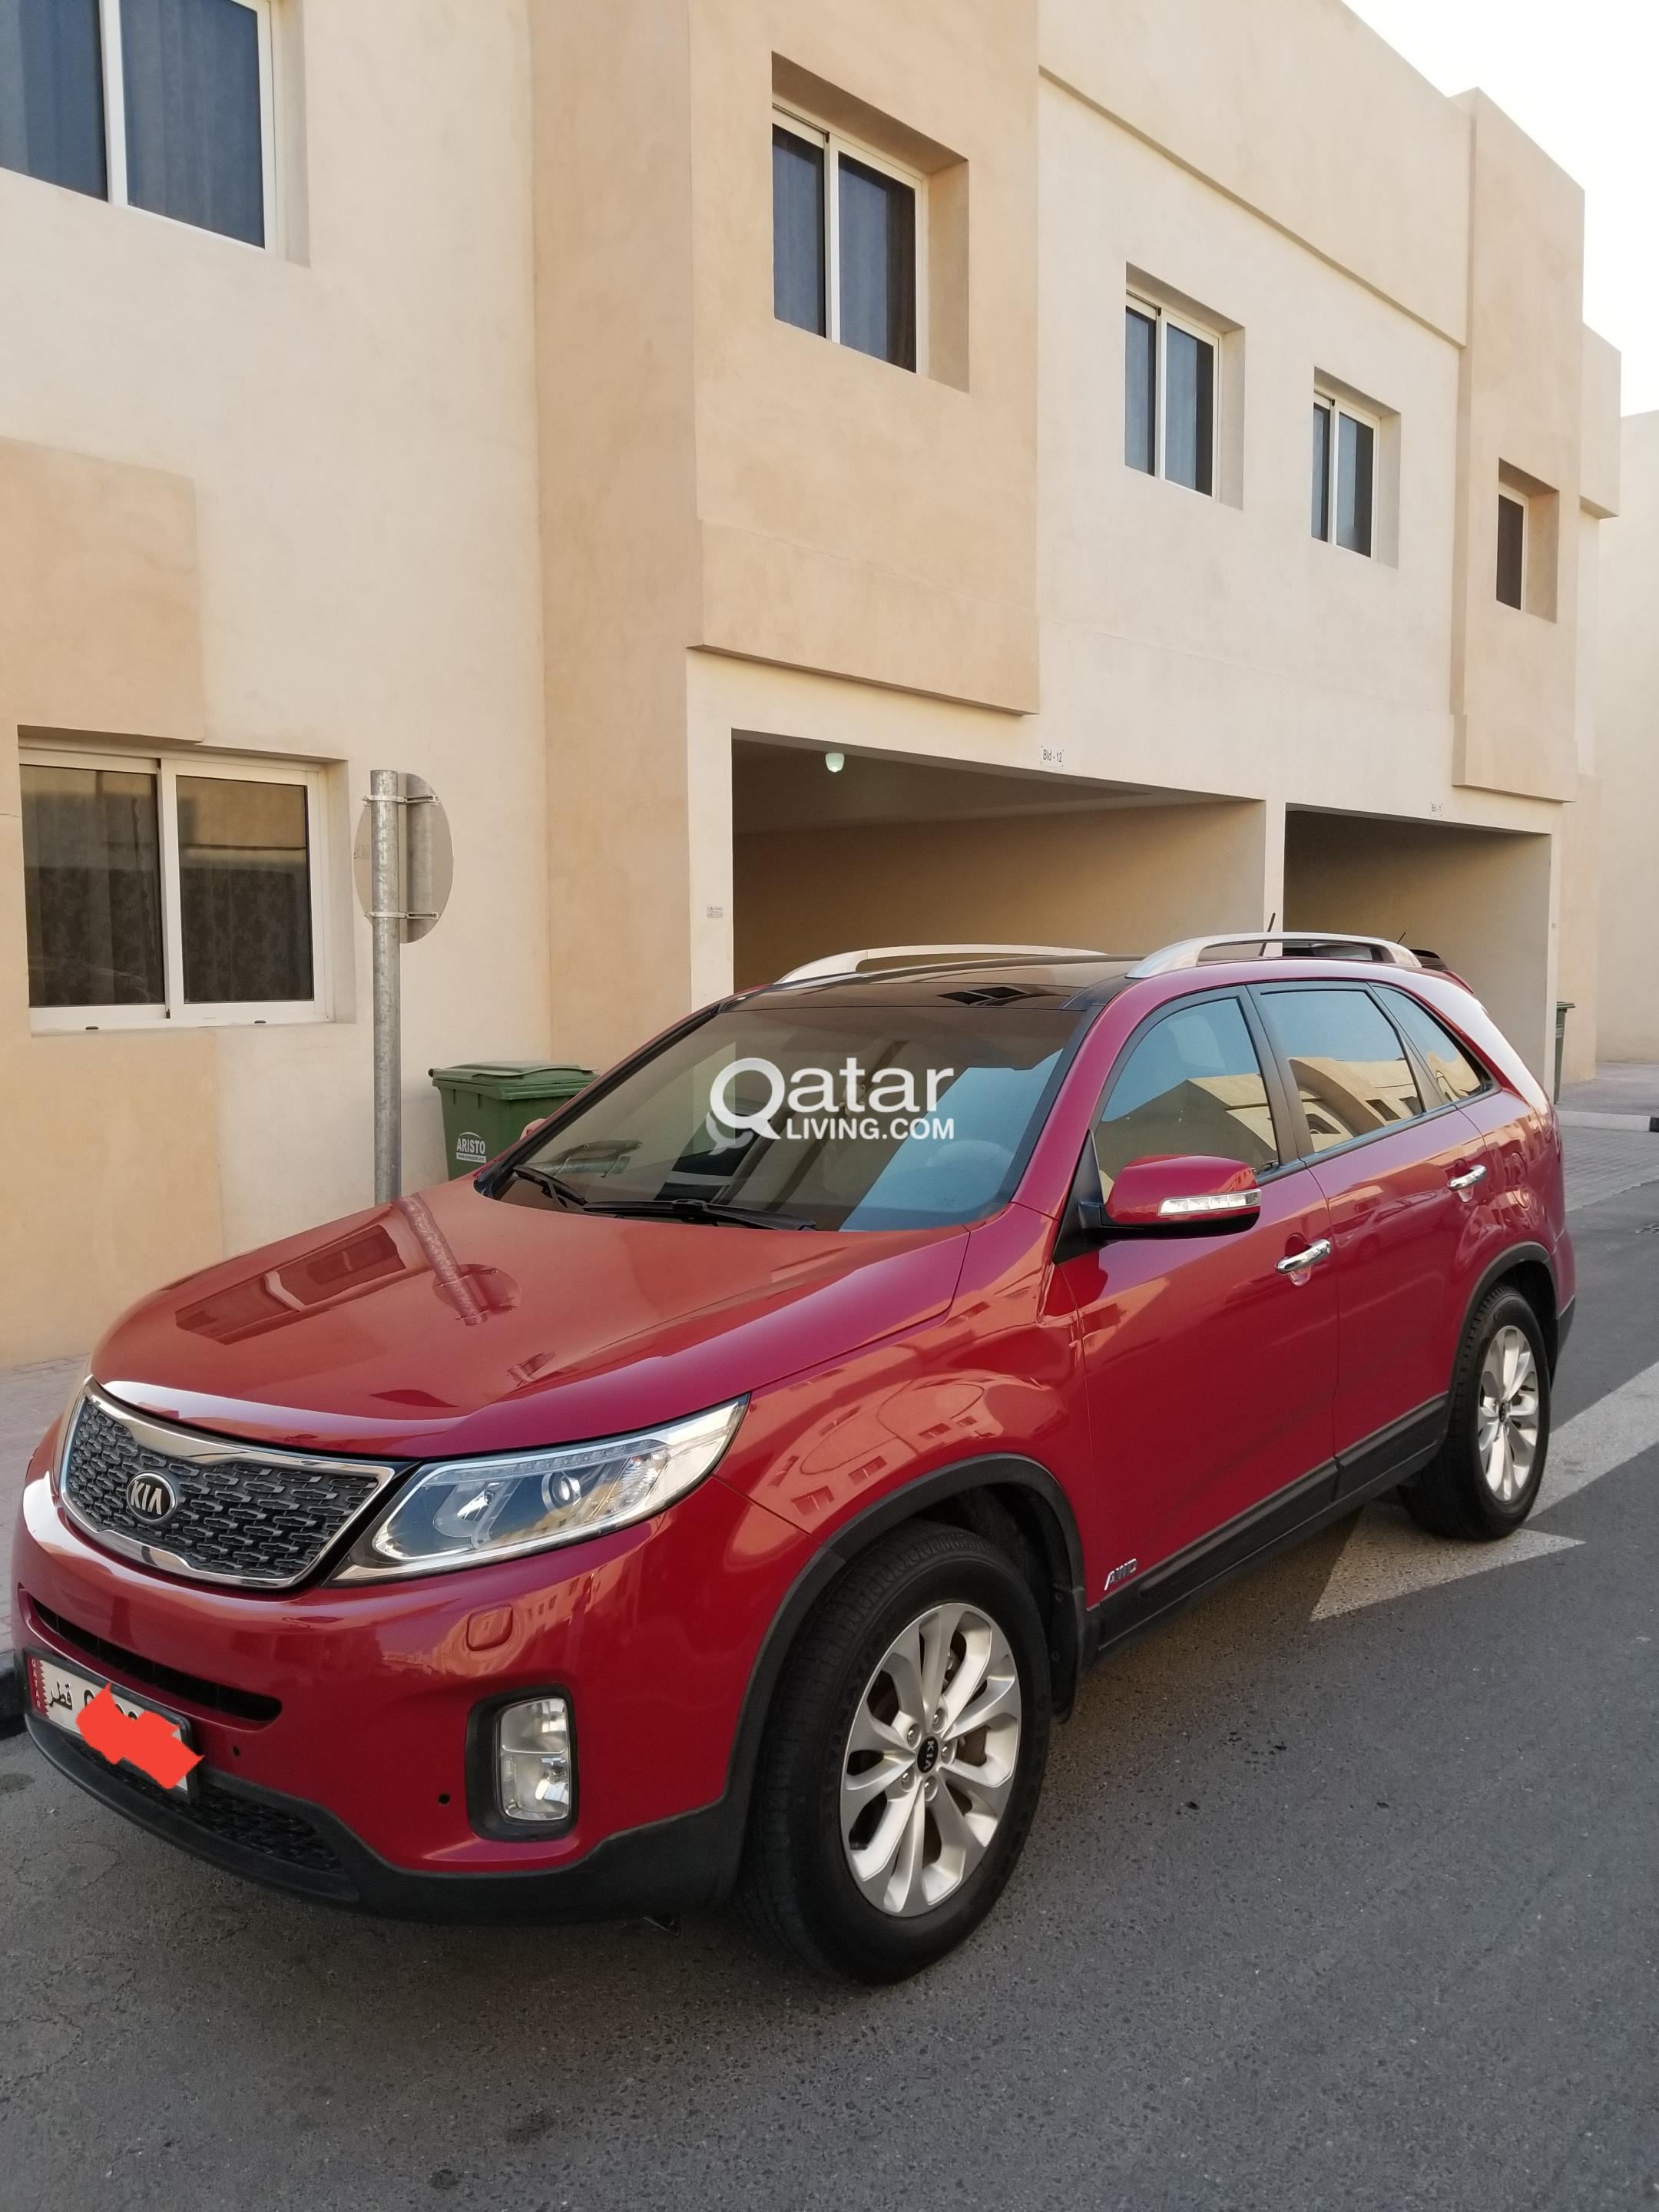 generation pictures clear exterior trader the sorento views news of first kia car motor new qnews price